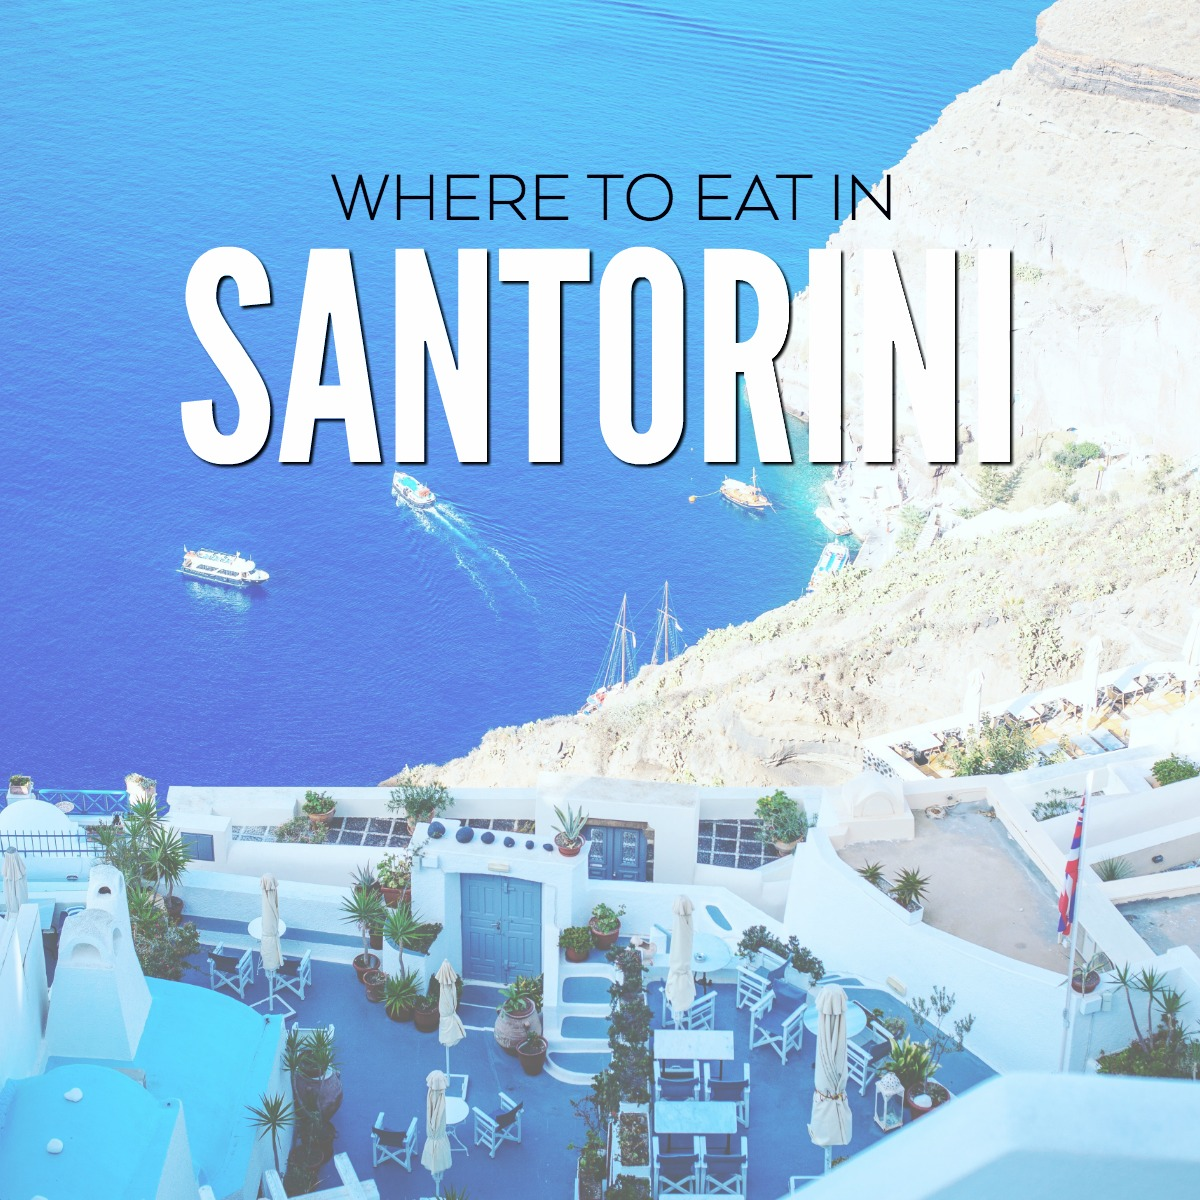 WHERE TO EAT IN SANTORINI GREECE